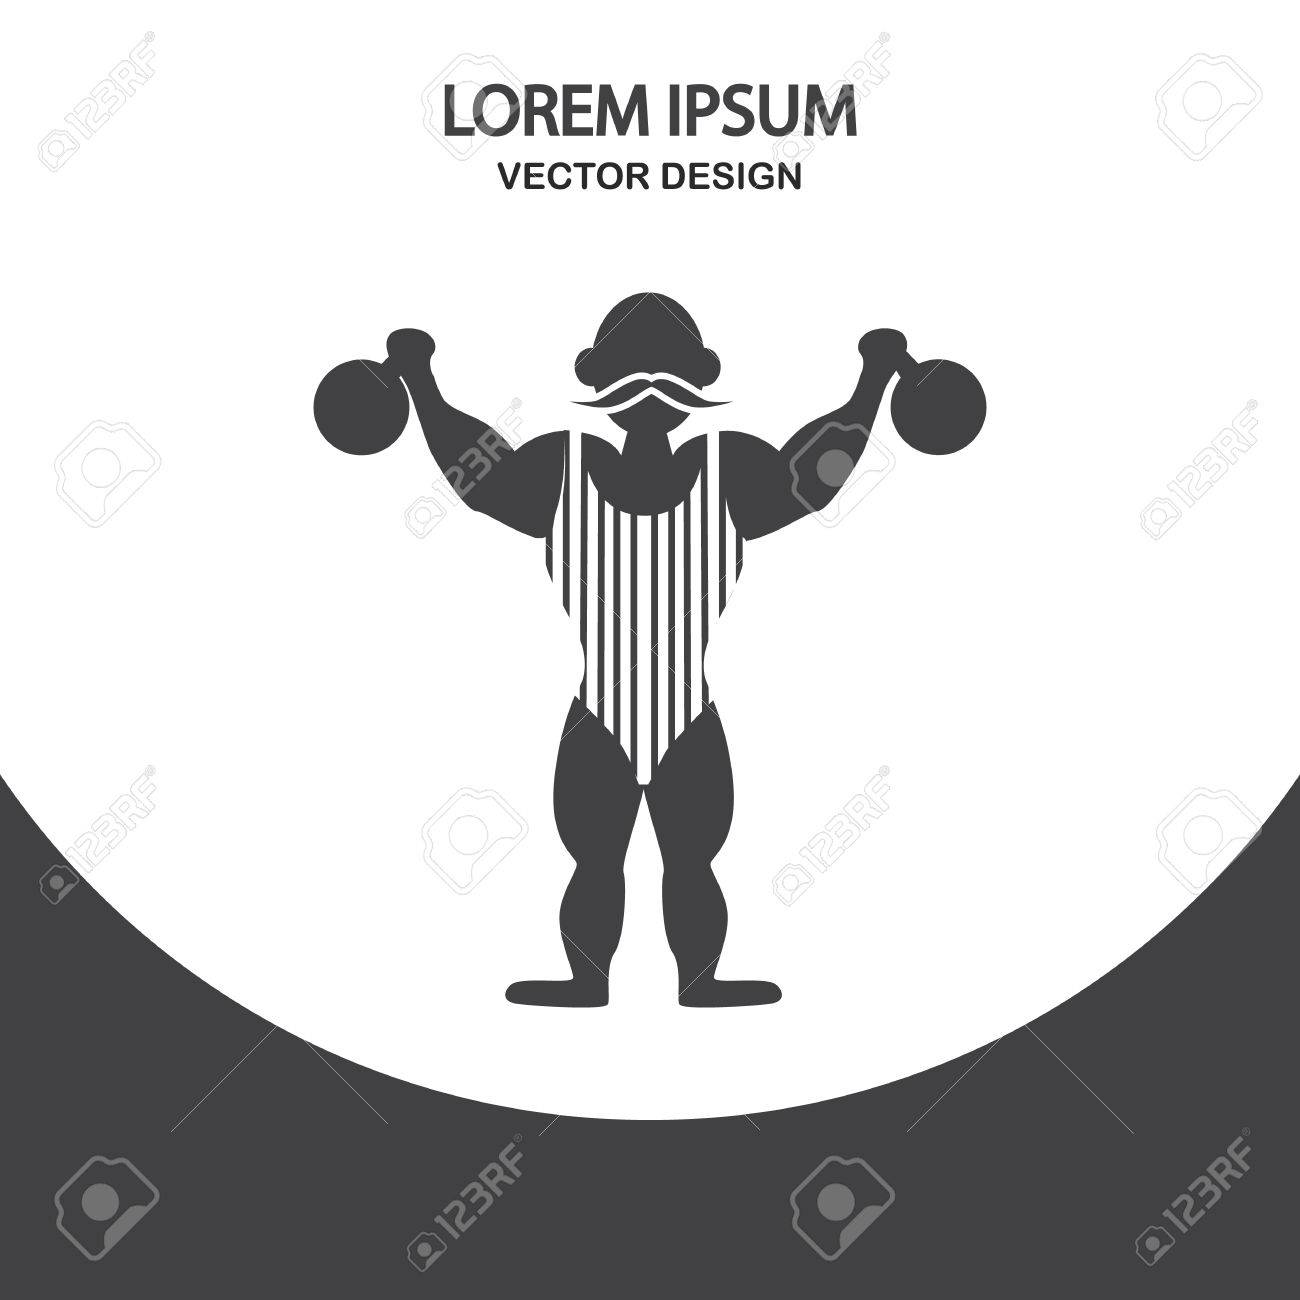 Circus Strongman Icon On The Background Royalty Cliparts 1300x1300